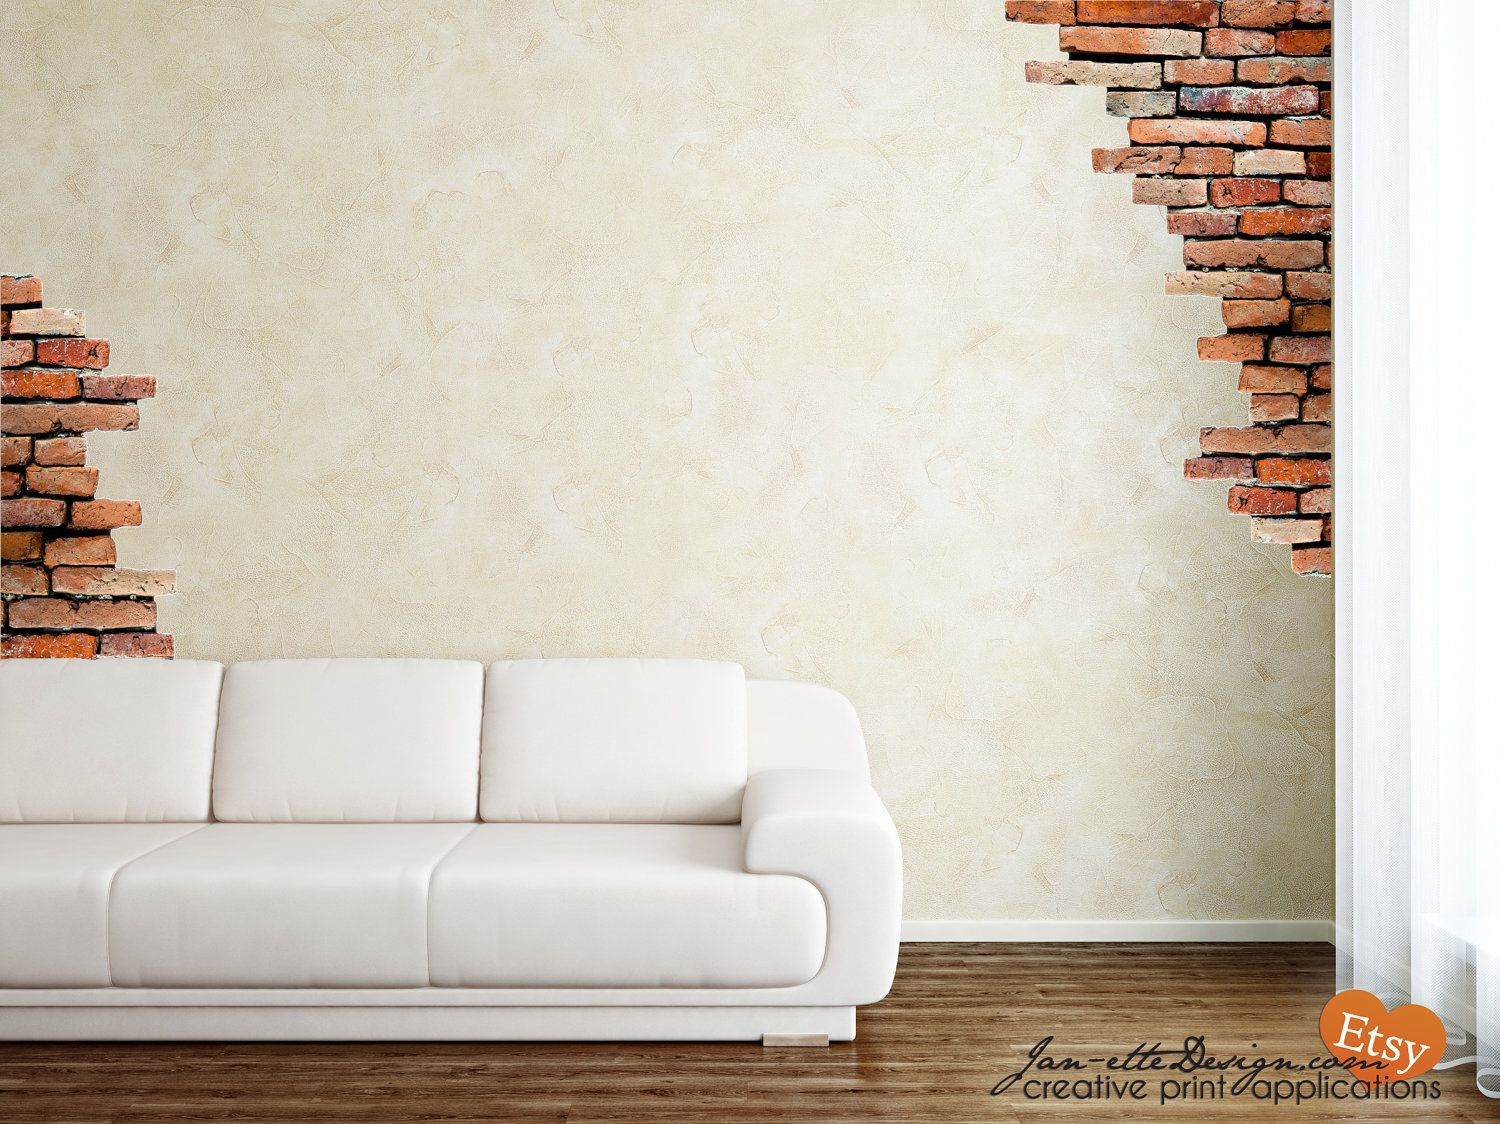 Wall decalbrick wall fabric wall decalsbrick wall stickers wall decalbrick wall fabric wall decalsbrick wall stickers amipublicfo Gallery